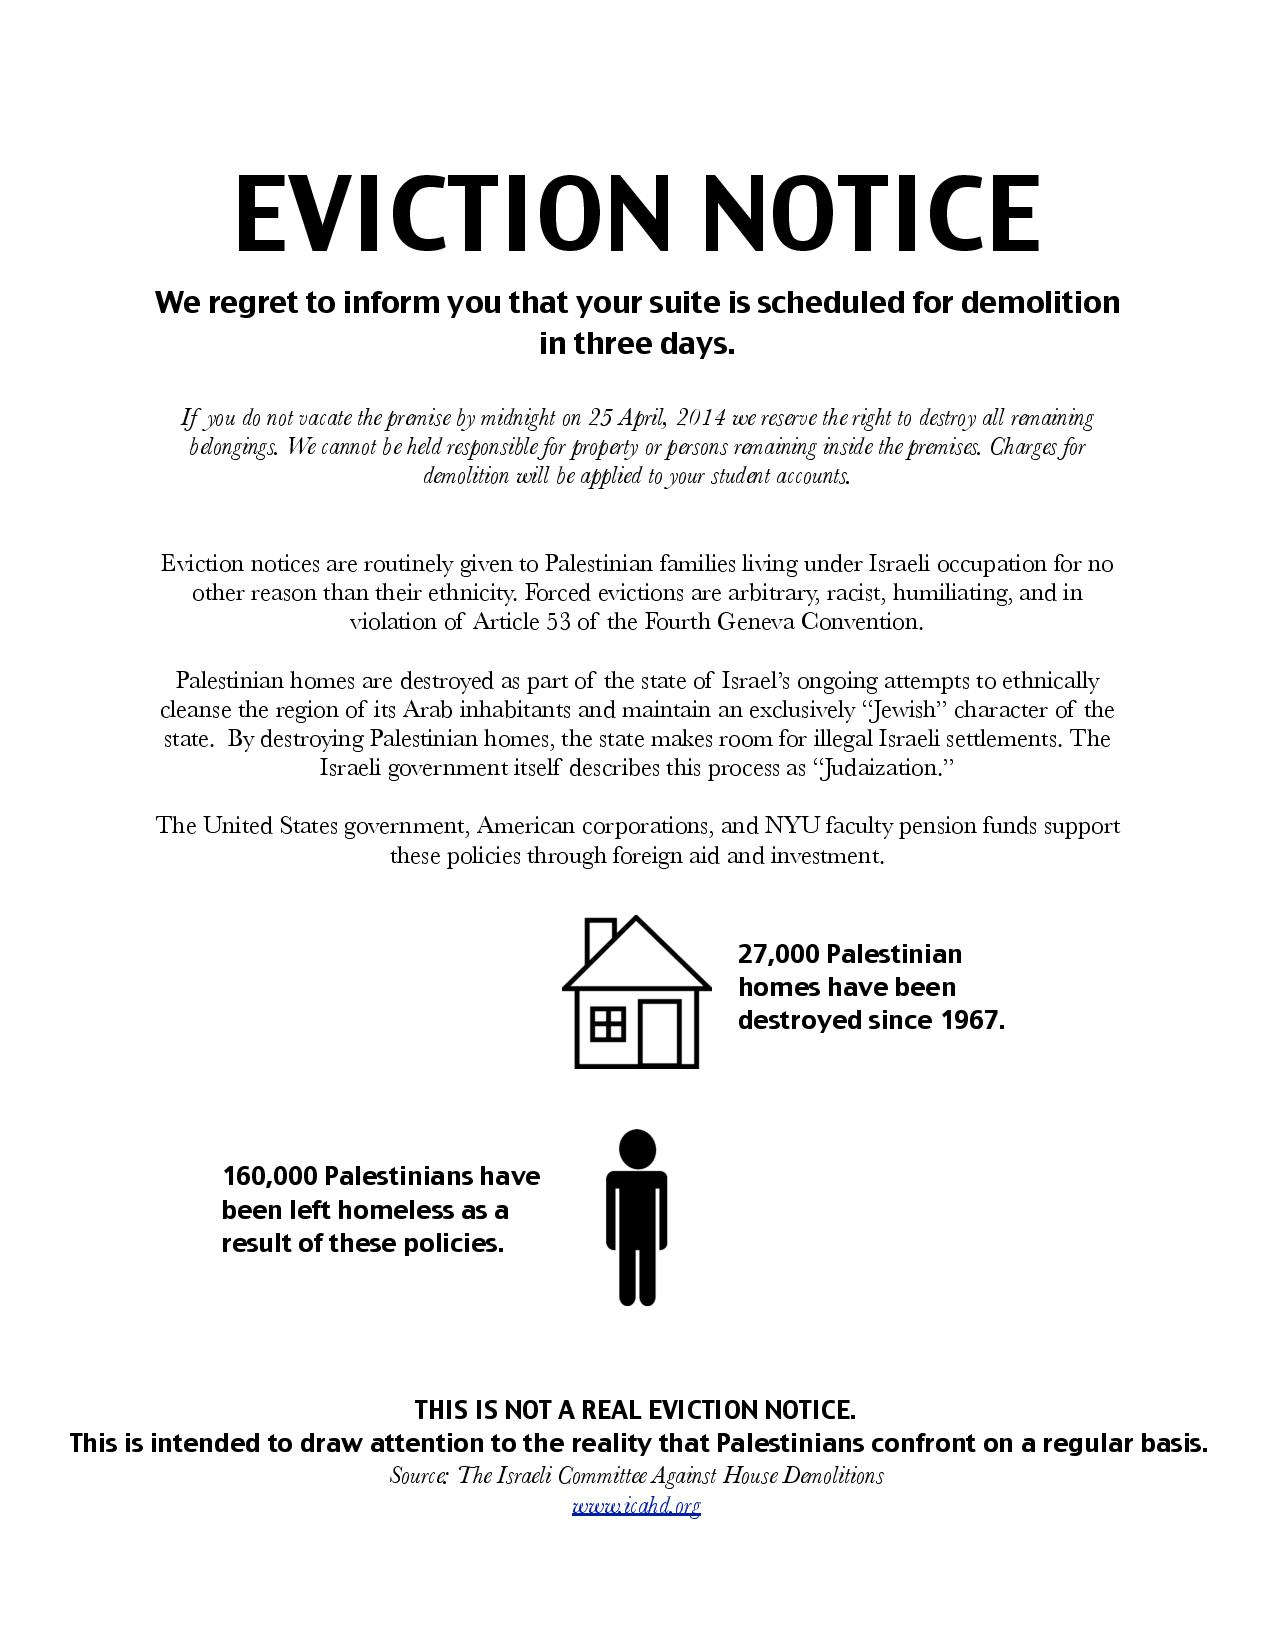 Statement regarding nyu sjps mock eviction notice action nyu eviction notice final 2 page 001 altavistaventures Image collections